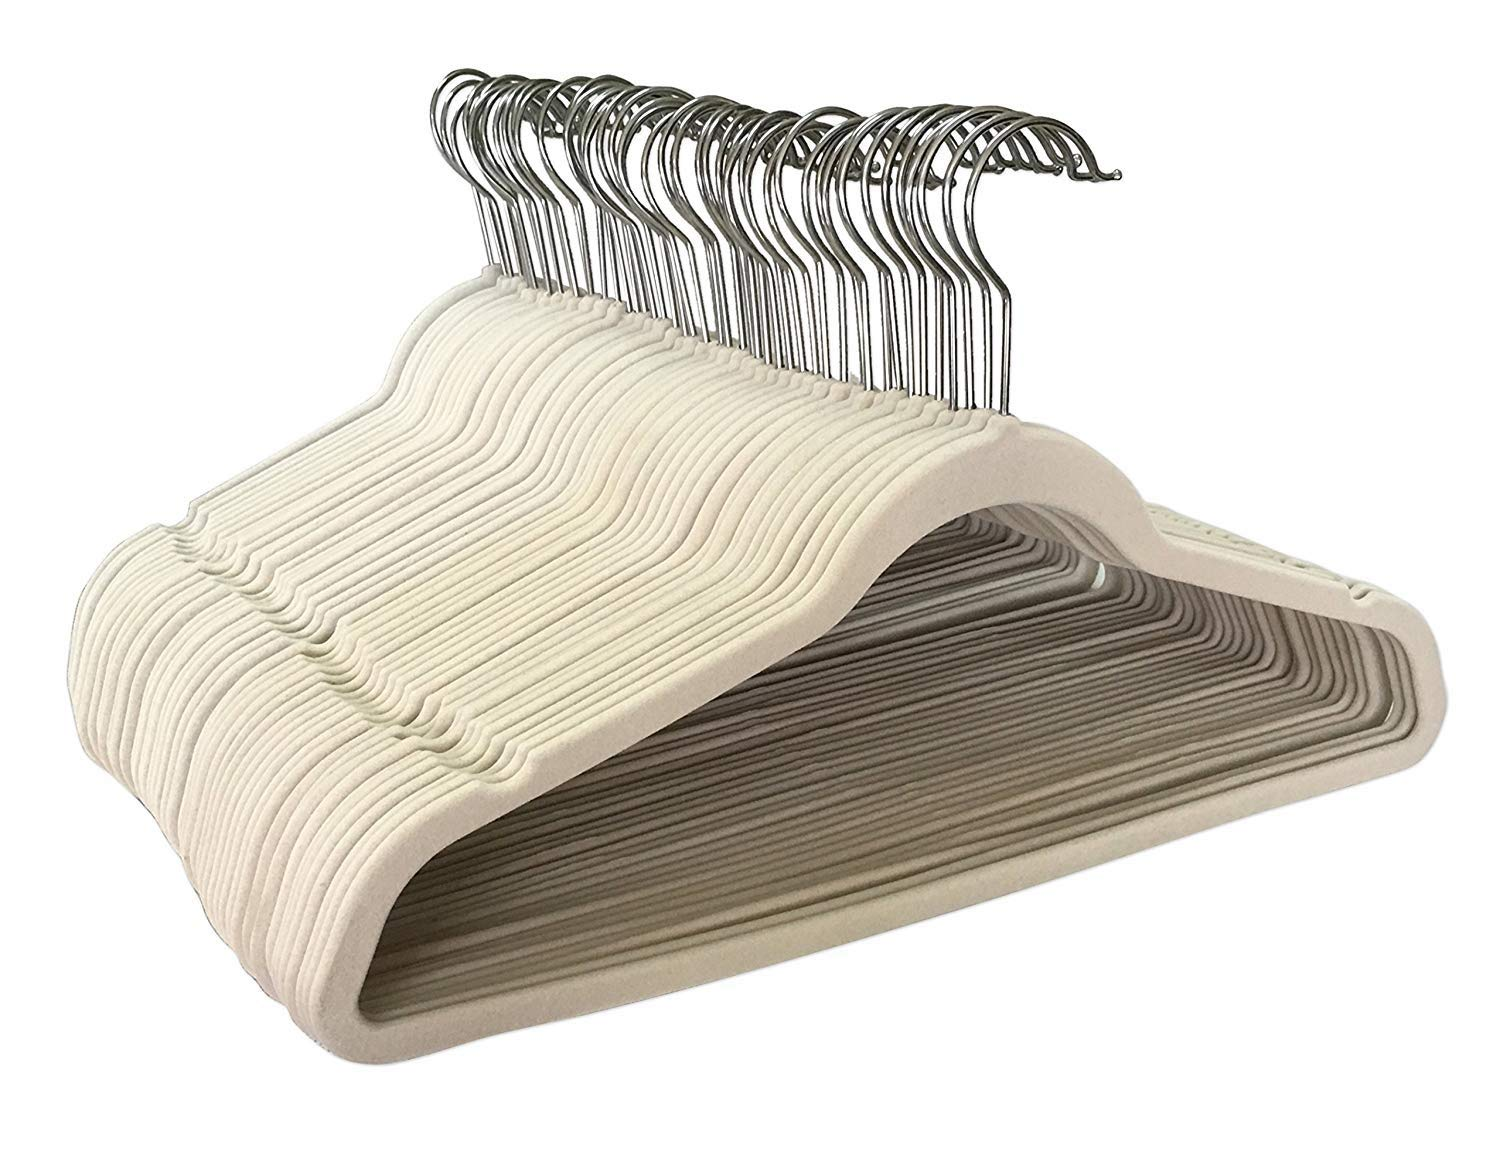 Jeronic 50 Pack Beige Velvet Hangers Clothes Hangers Velvet Hanger Clothing Hangers Clothes Hanger Suit Hanger Ultra Thin No Slip for Shirts, Suit by Jeronic